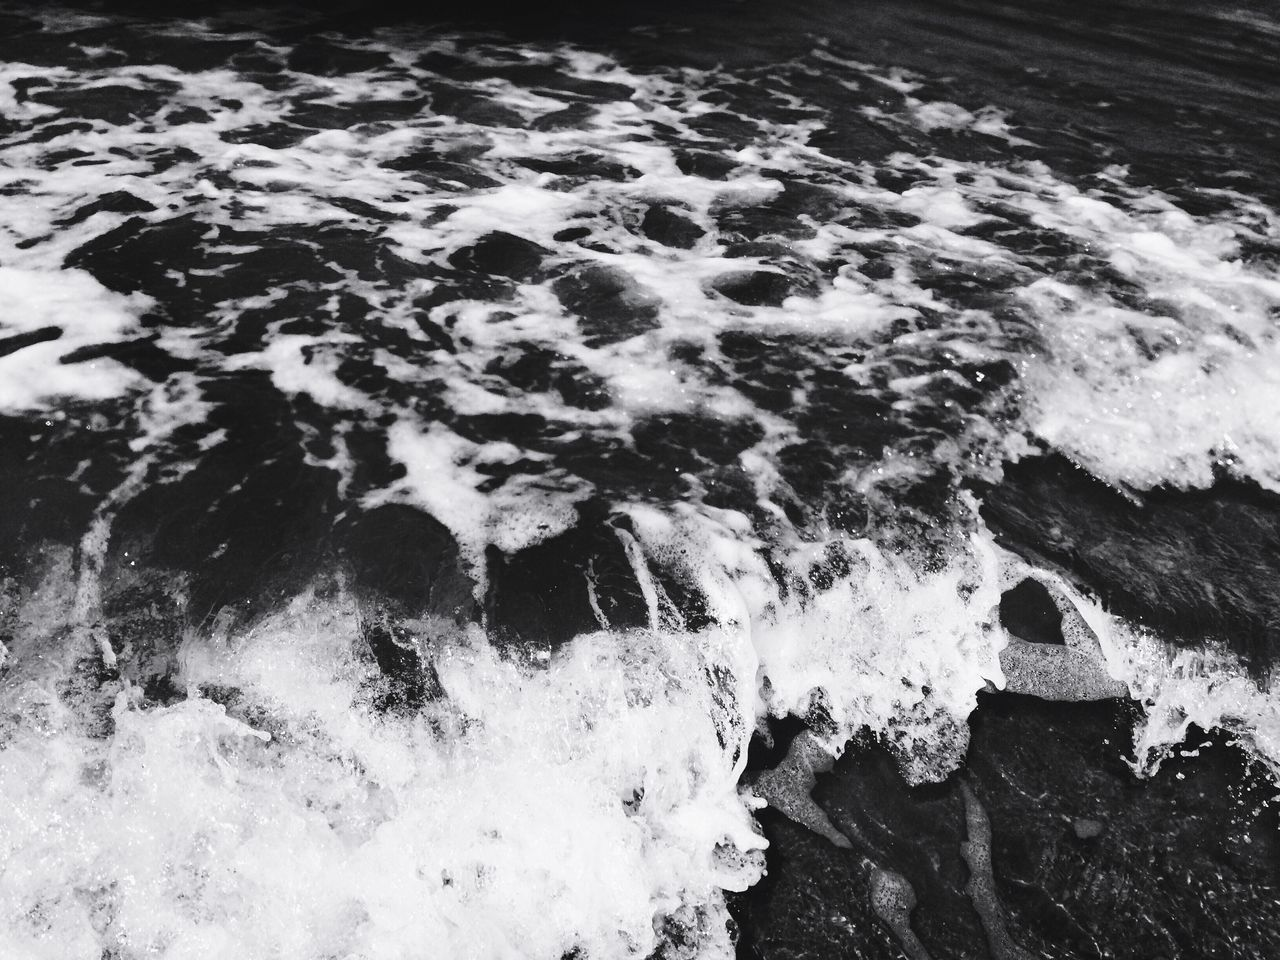 water, motion, wave, nature, high angle view, no people, day, outdoors, sea, beauty in nature, power in nature, close-up